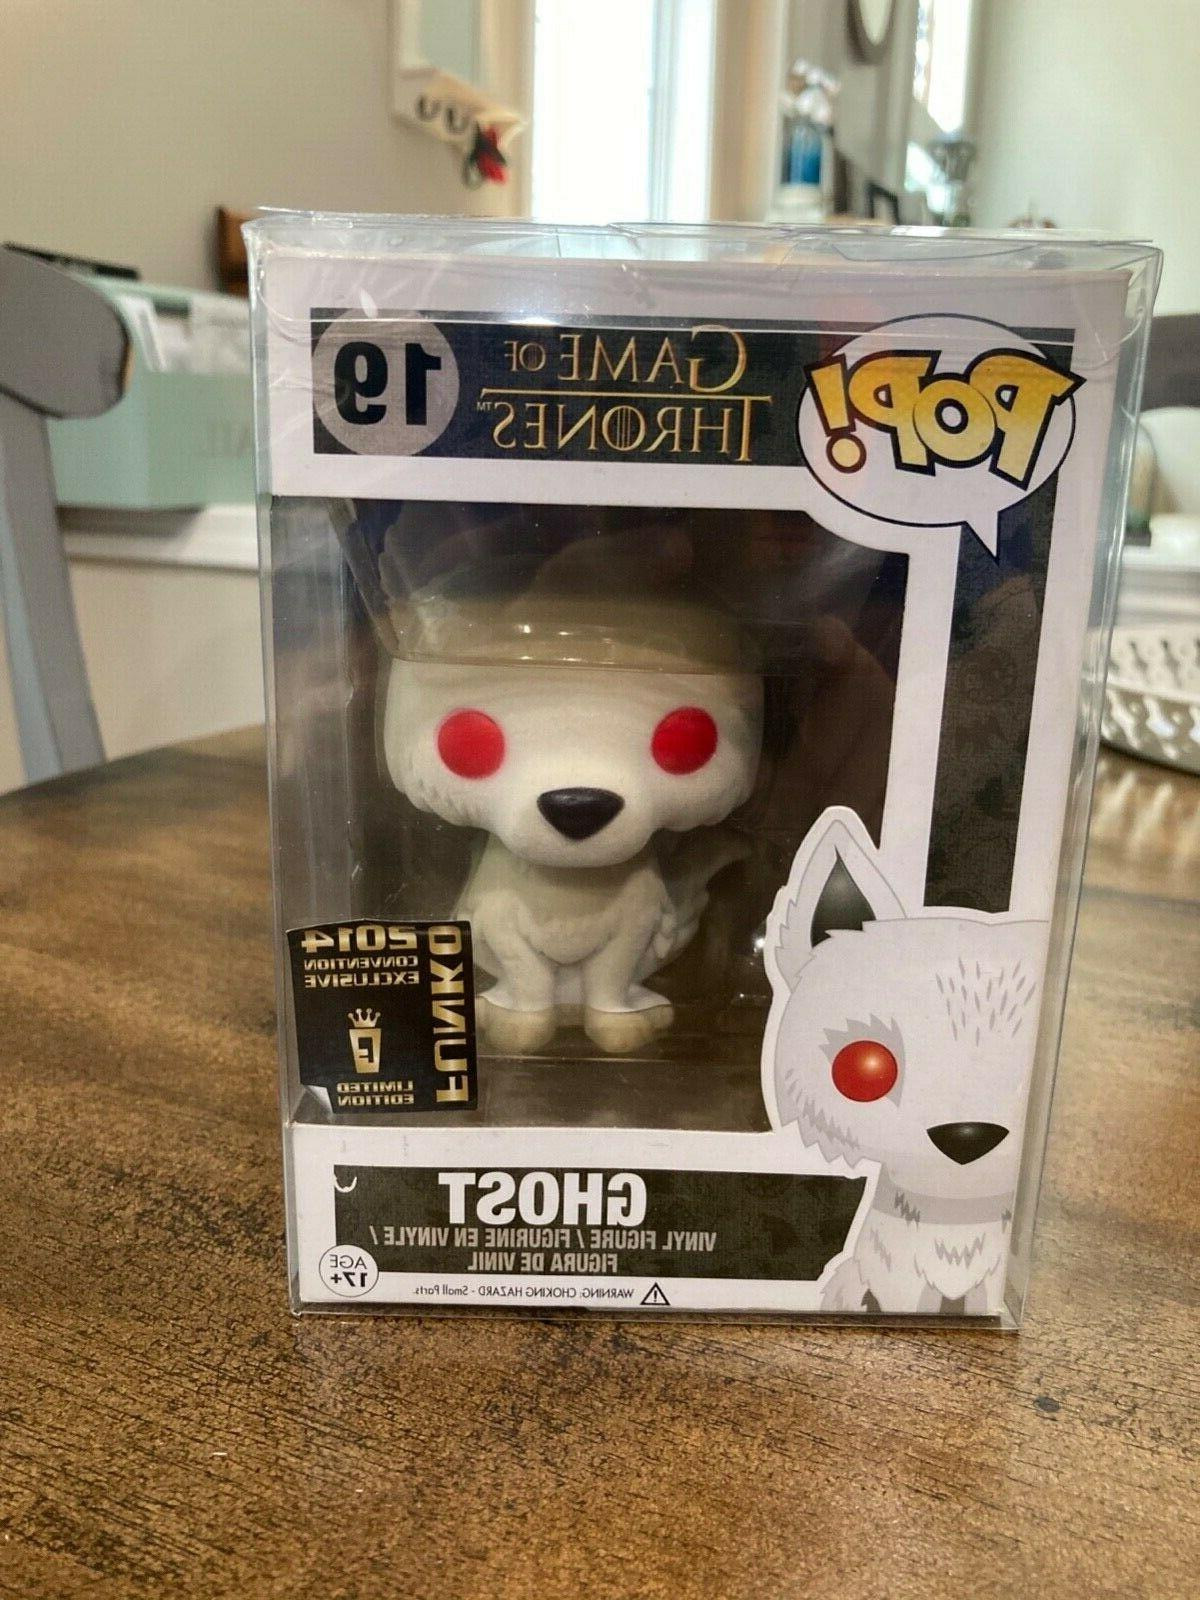 game of thrones pop 19 ghost 2014